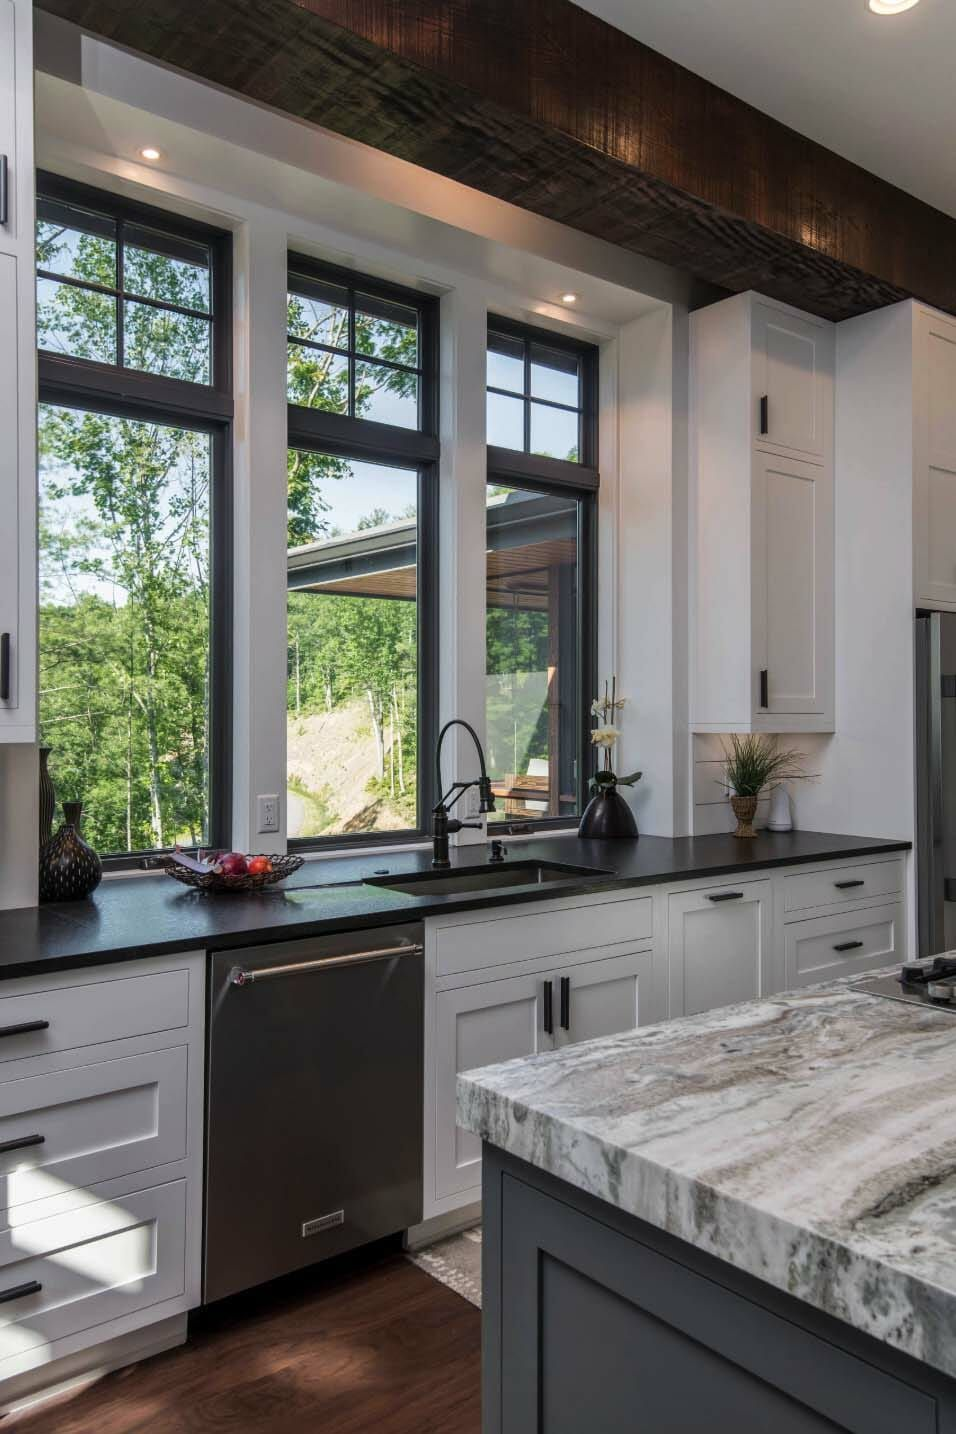 Inviting modern mountain home surrounded by forest in north carolina also top farmhouse kitchen backsplash ideas kitchenrenovations rh pinterest